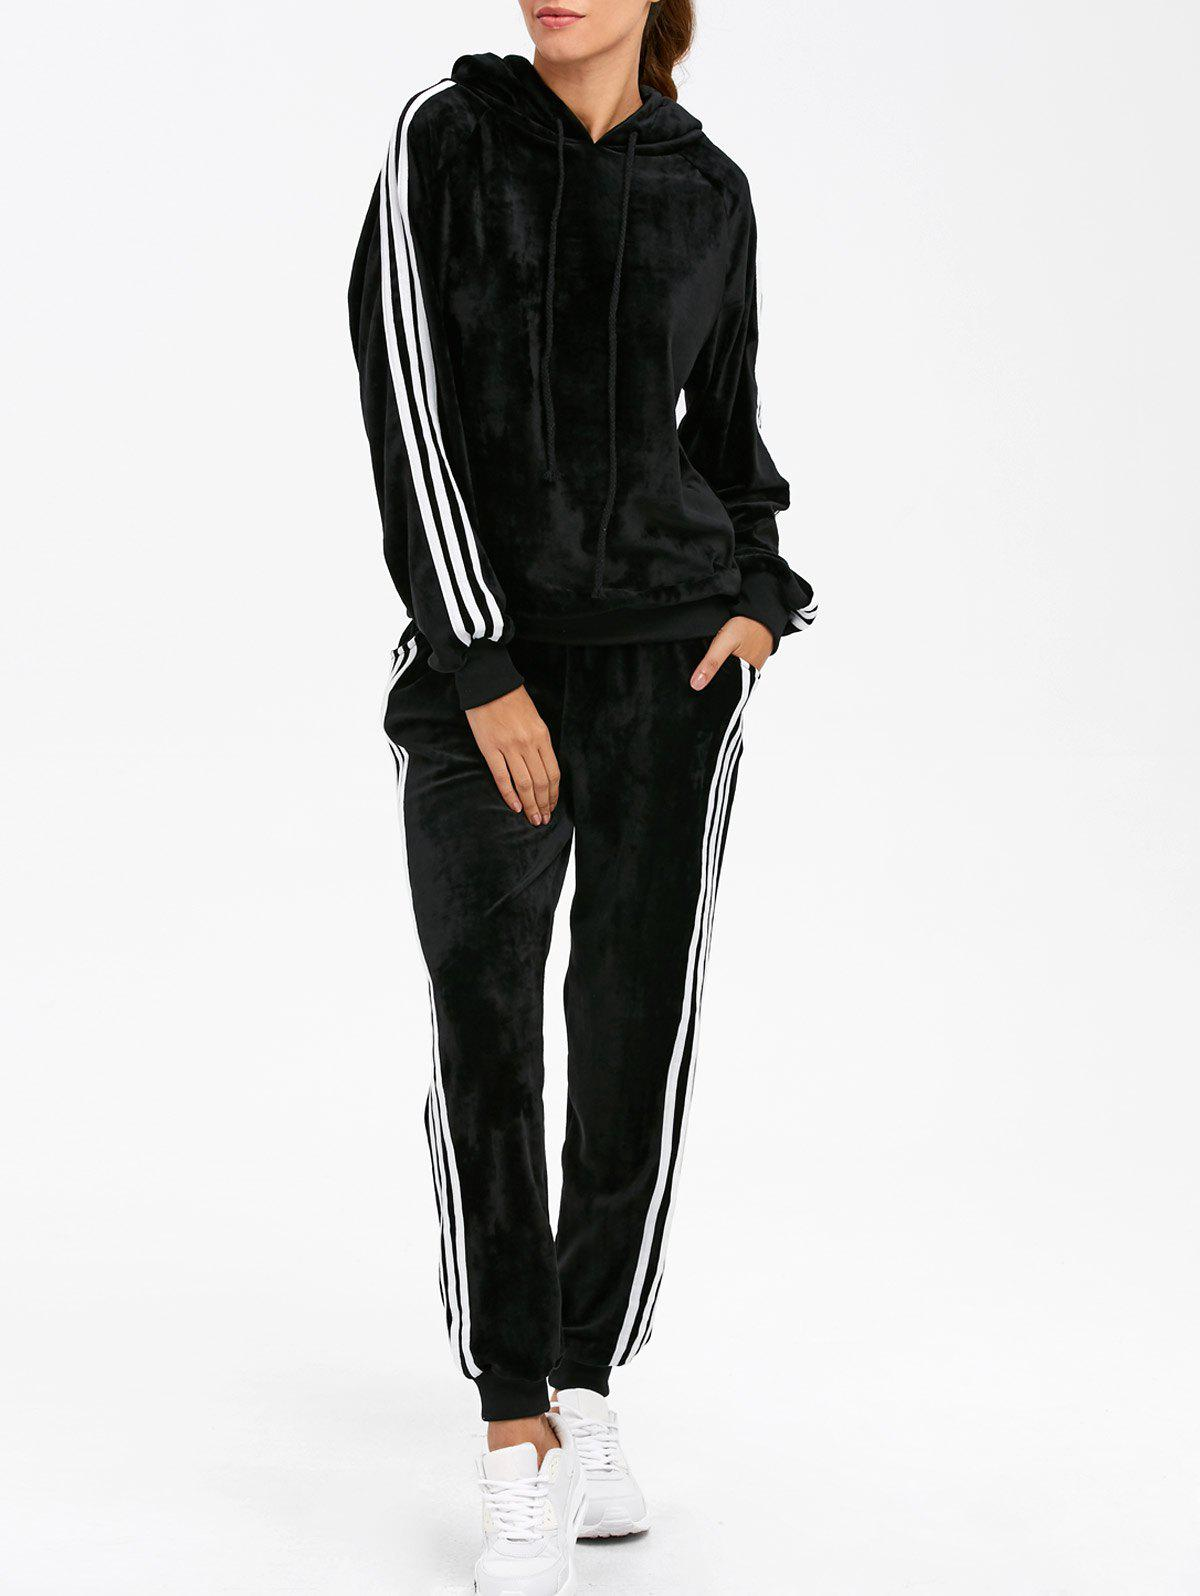 Sporty Velvet Hoodie and Running Jogger SweatpantsWOMEN<br><br>Size: S; Color: BLACK; Material: Spandex; Shirt Length: Regular; Sleeve Length: Full; Pattern Style: Striped; Weight: 0.4700kg; Package Contents: 1 x Hoodie  1 x Sweatpants;